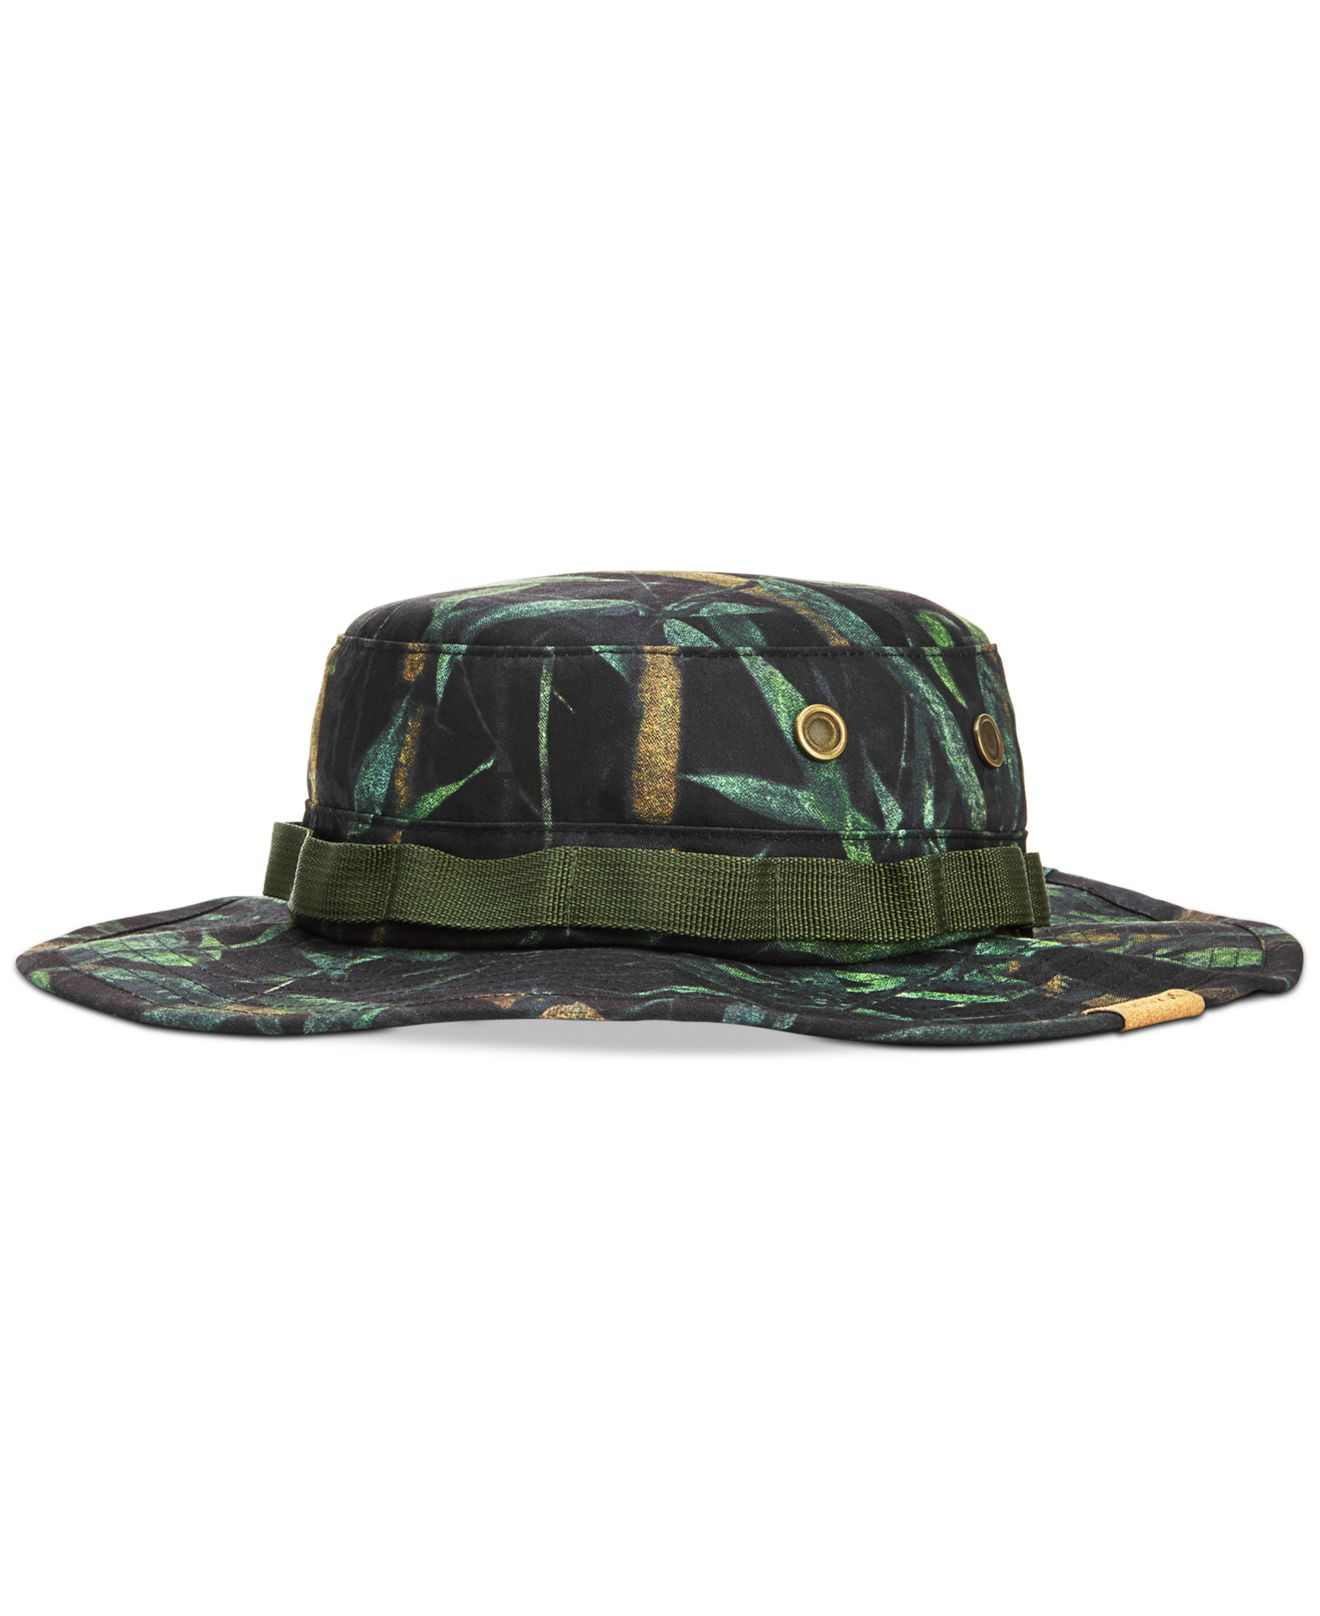 718eb98abe6 ... cheap lyst hurley safari bucket hat in green for men 773c0 7af57